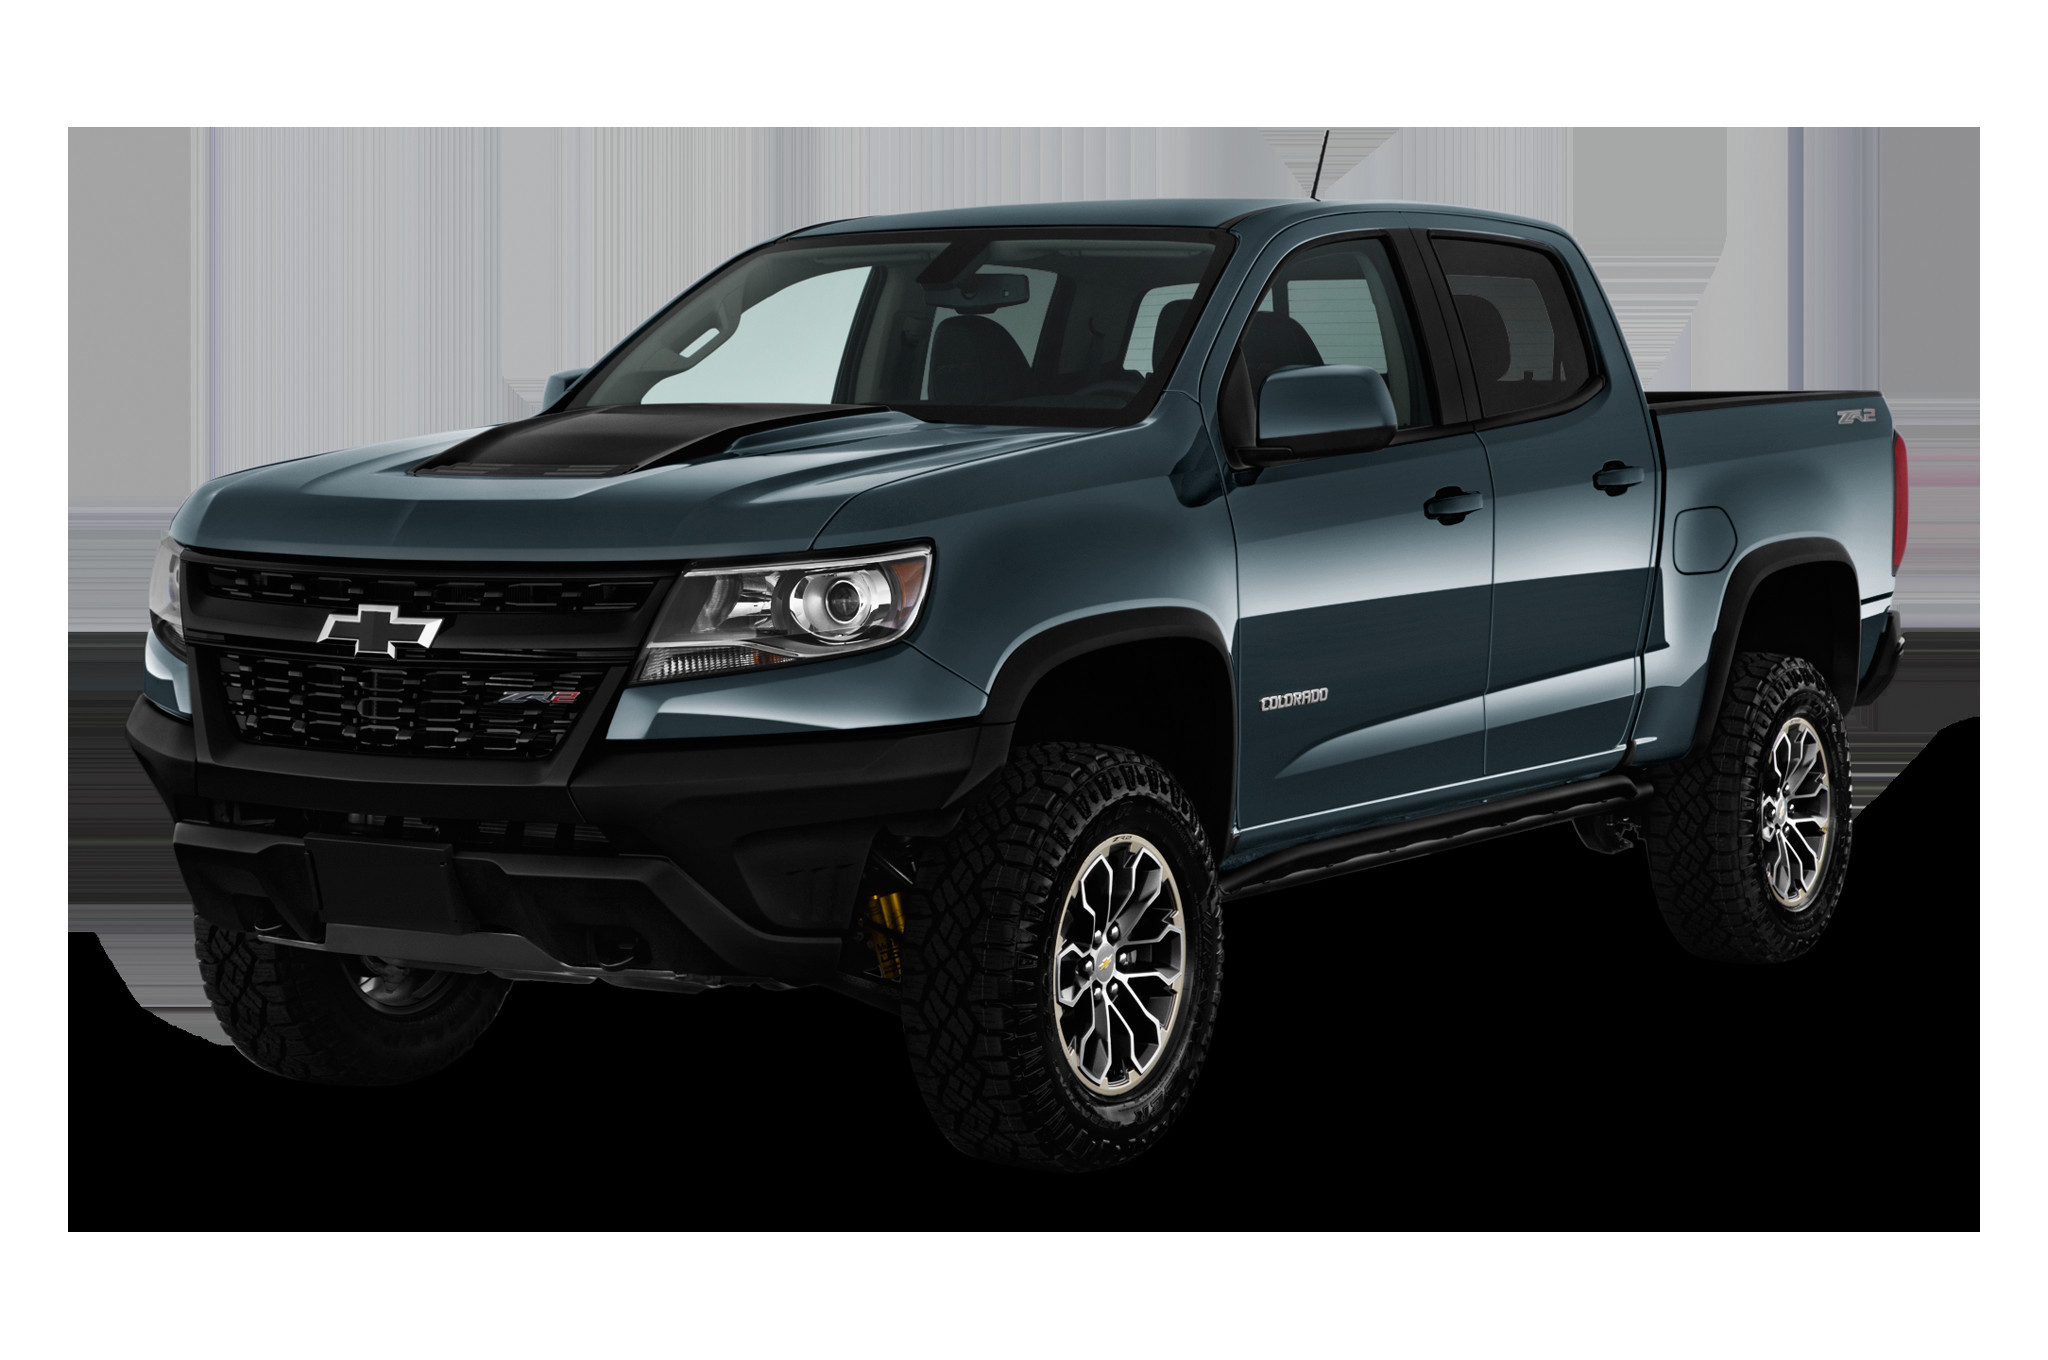 51 The 2019 Chevy Colorado Going Launched Soon Review and Release date